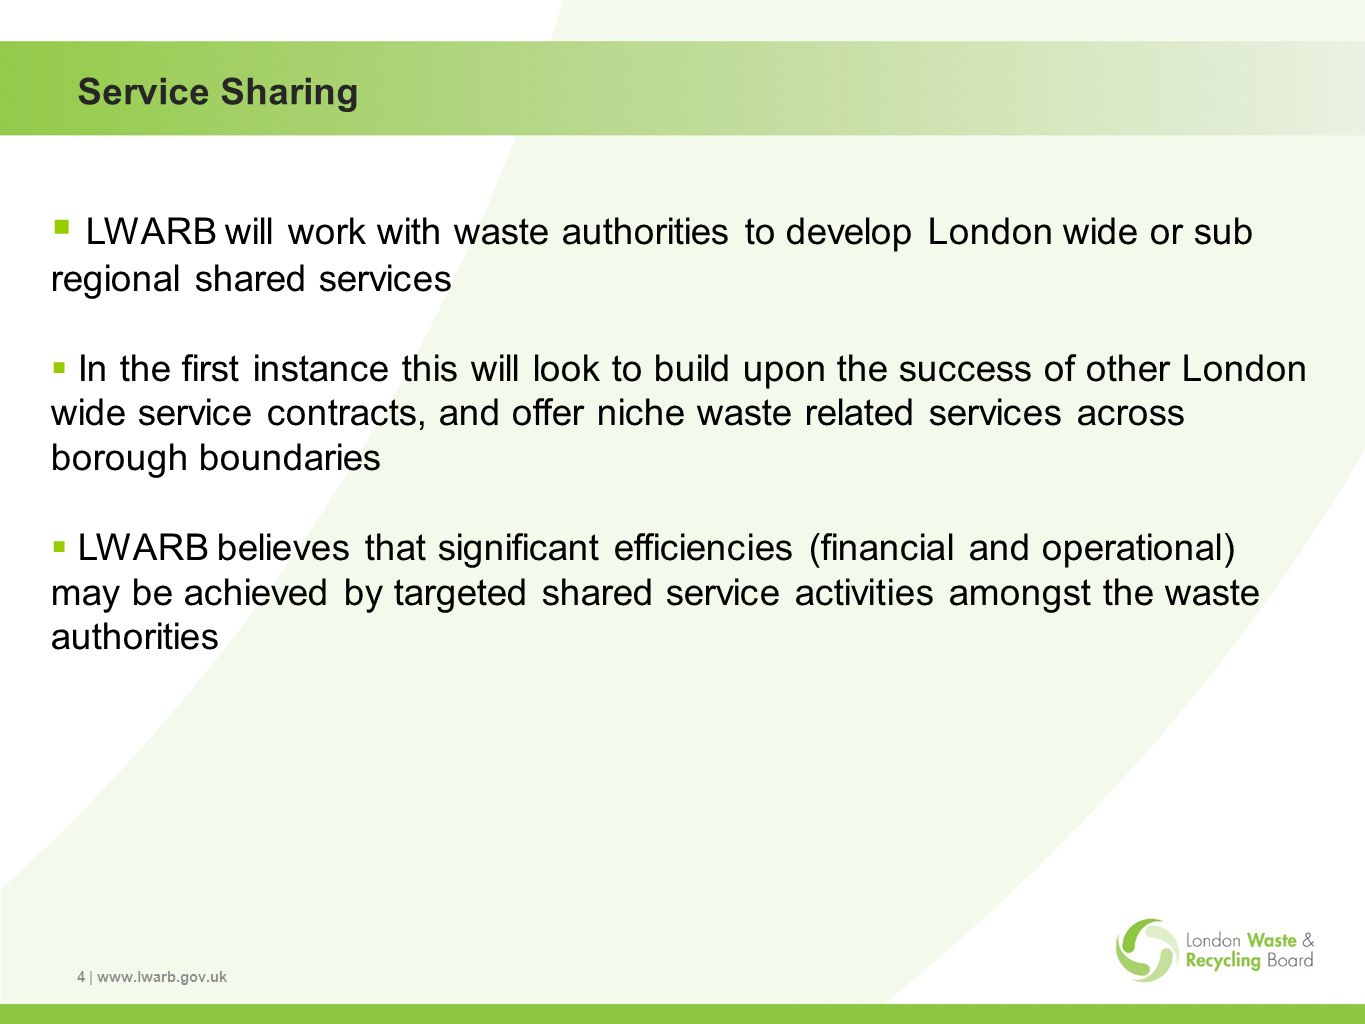 4 | www.lwarb.gov.uk Service Sharing LWARB will work with waste authorities to develop London wide or sub regional shared services In the first instance this will look to build upon the success of other London wide service contracts, and offer niche waste related services across borough boundaries LWARB believes that significant efficiencies (financial and operational) may be achieved by targeted shared service activities amongst the waste authorities